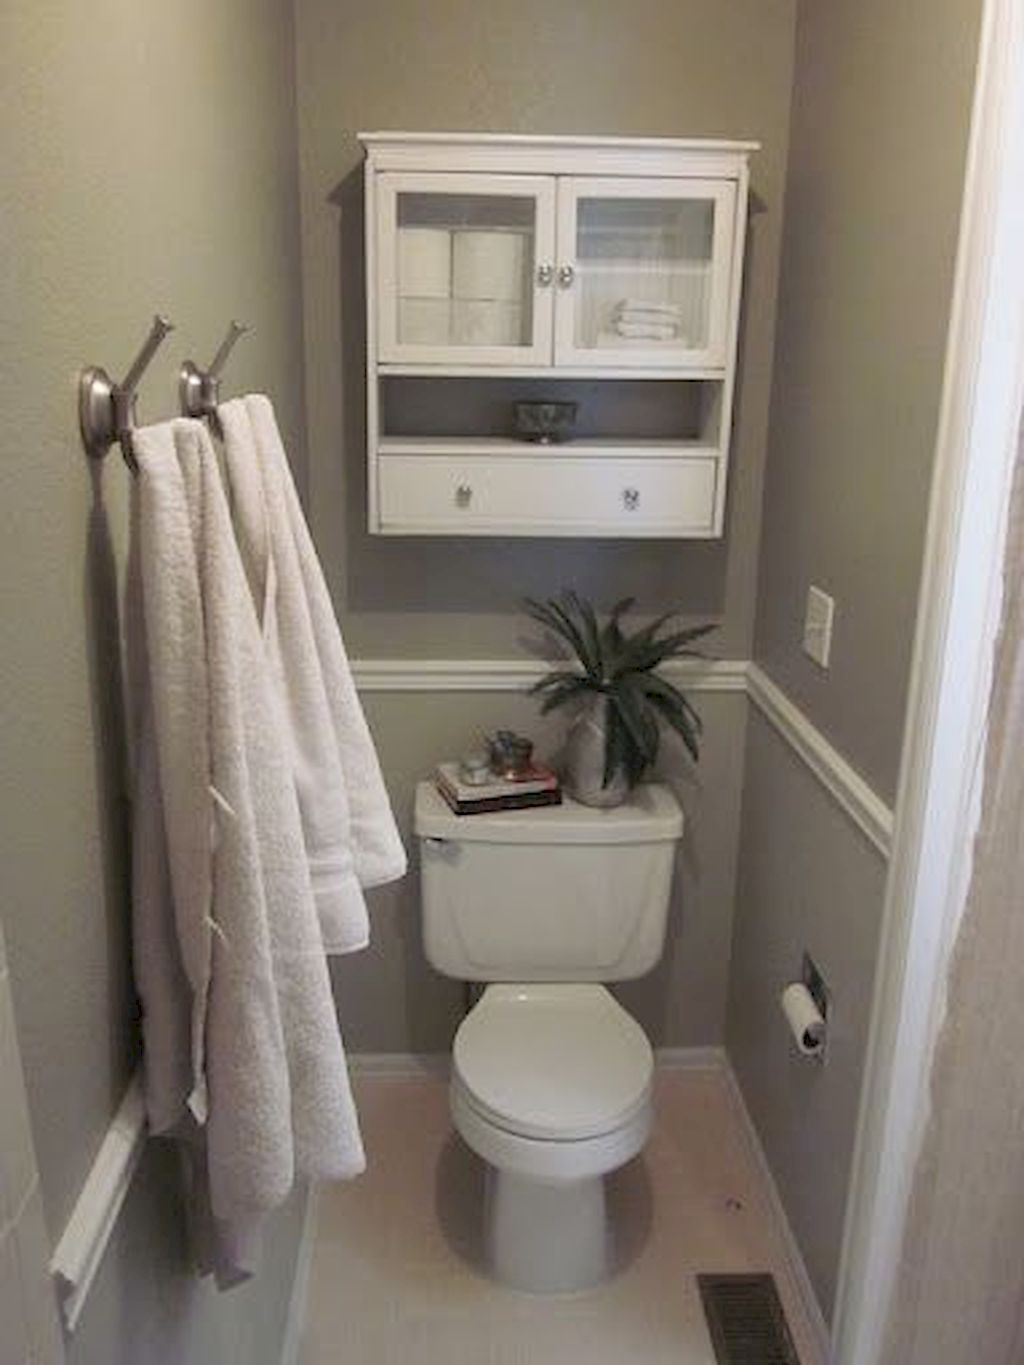 Nice How To Create Bathroom That Fit Best Toilet Closet Https Homeofpondo Com How To Create Bathroo Toilet Room Decor Cabinet Above Toilet Small Toilet Room